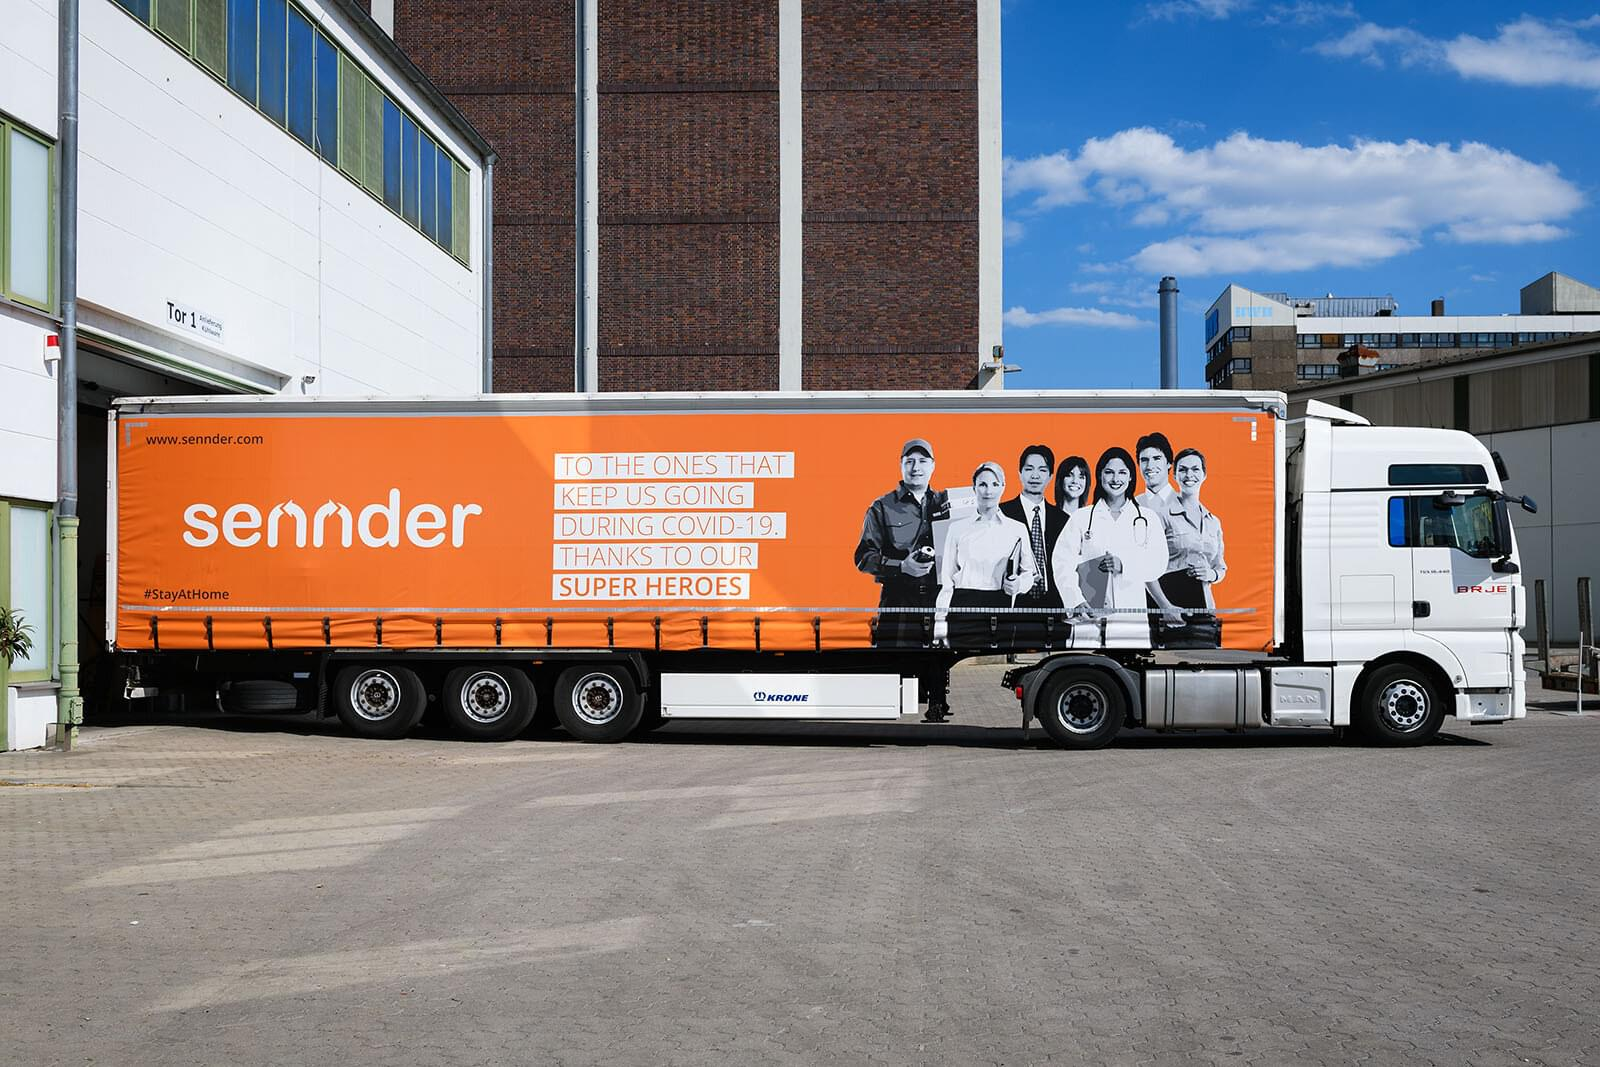 sennder launches branded fleet to thank superheroes of COVID-19